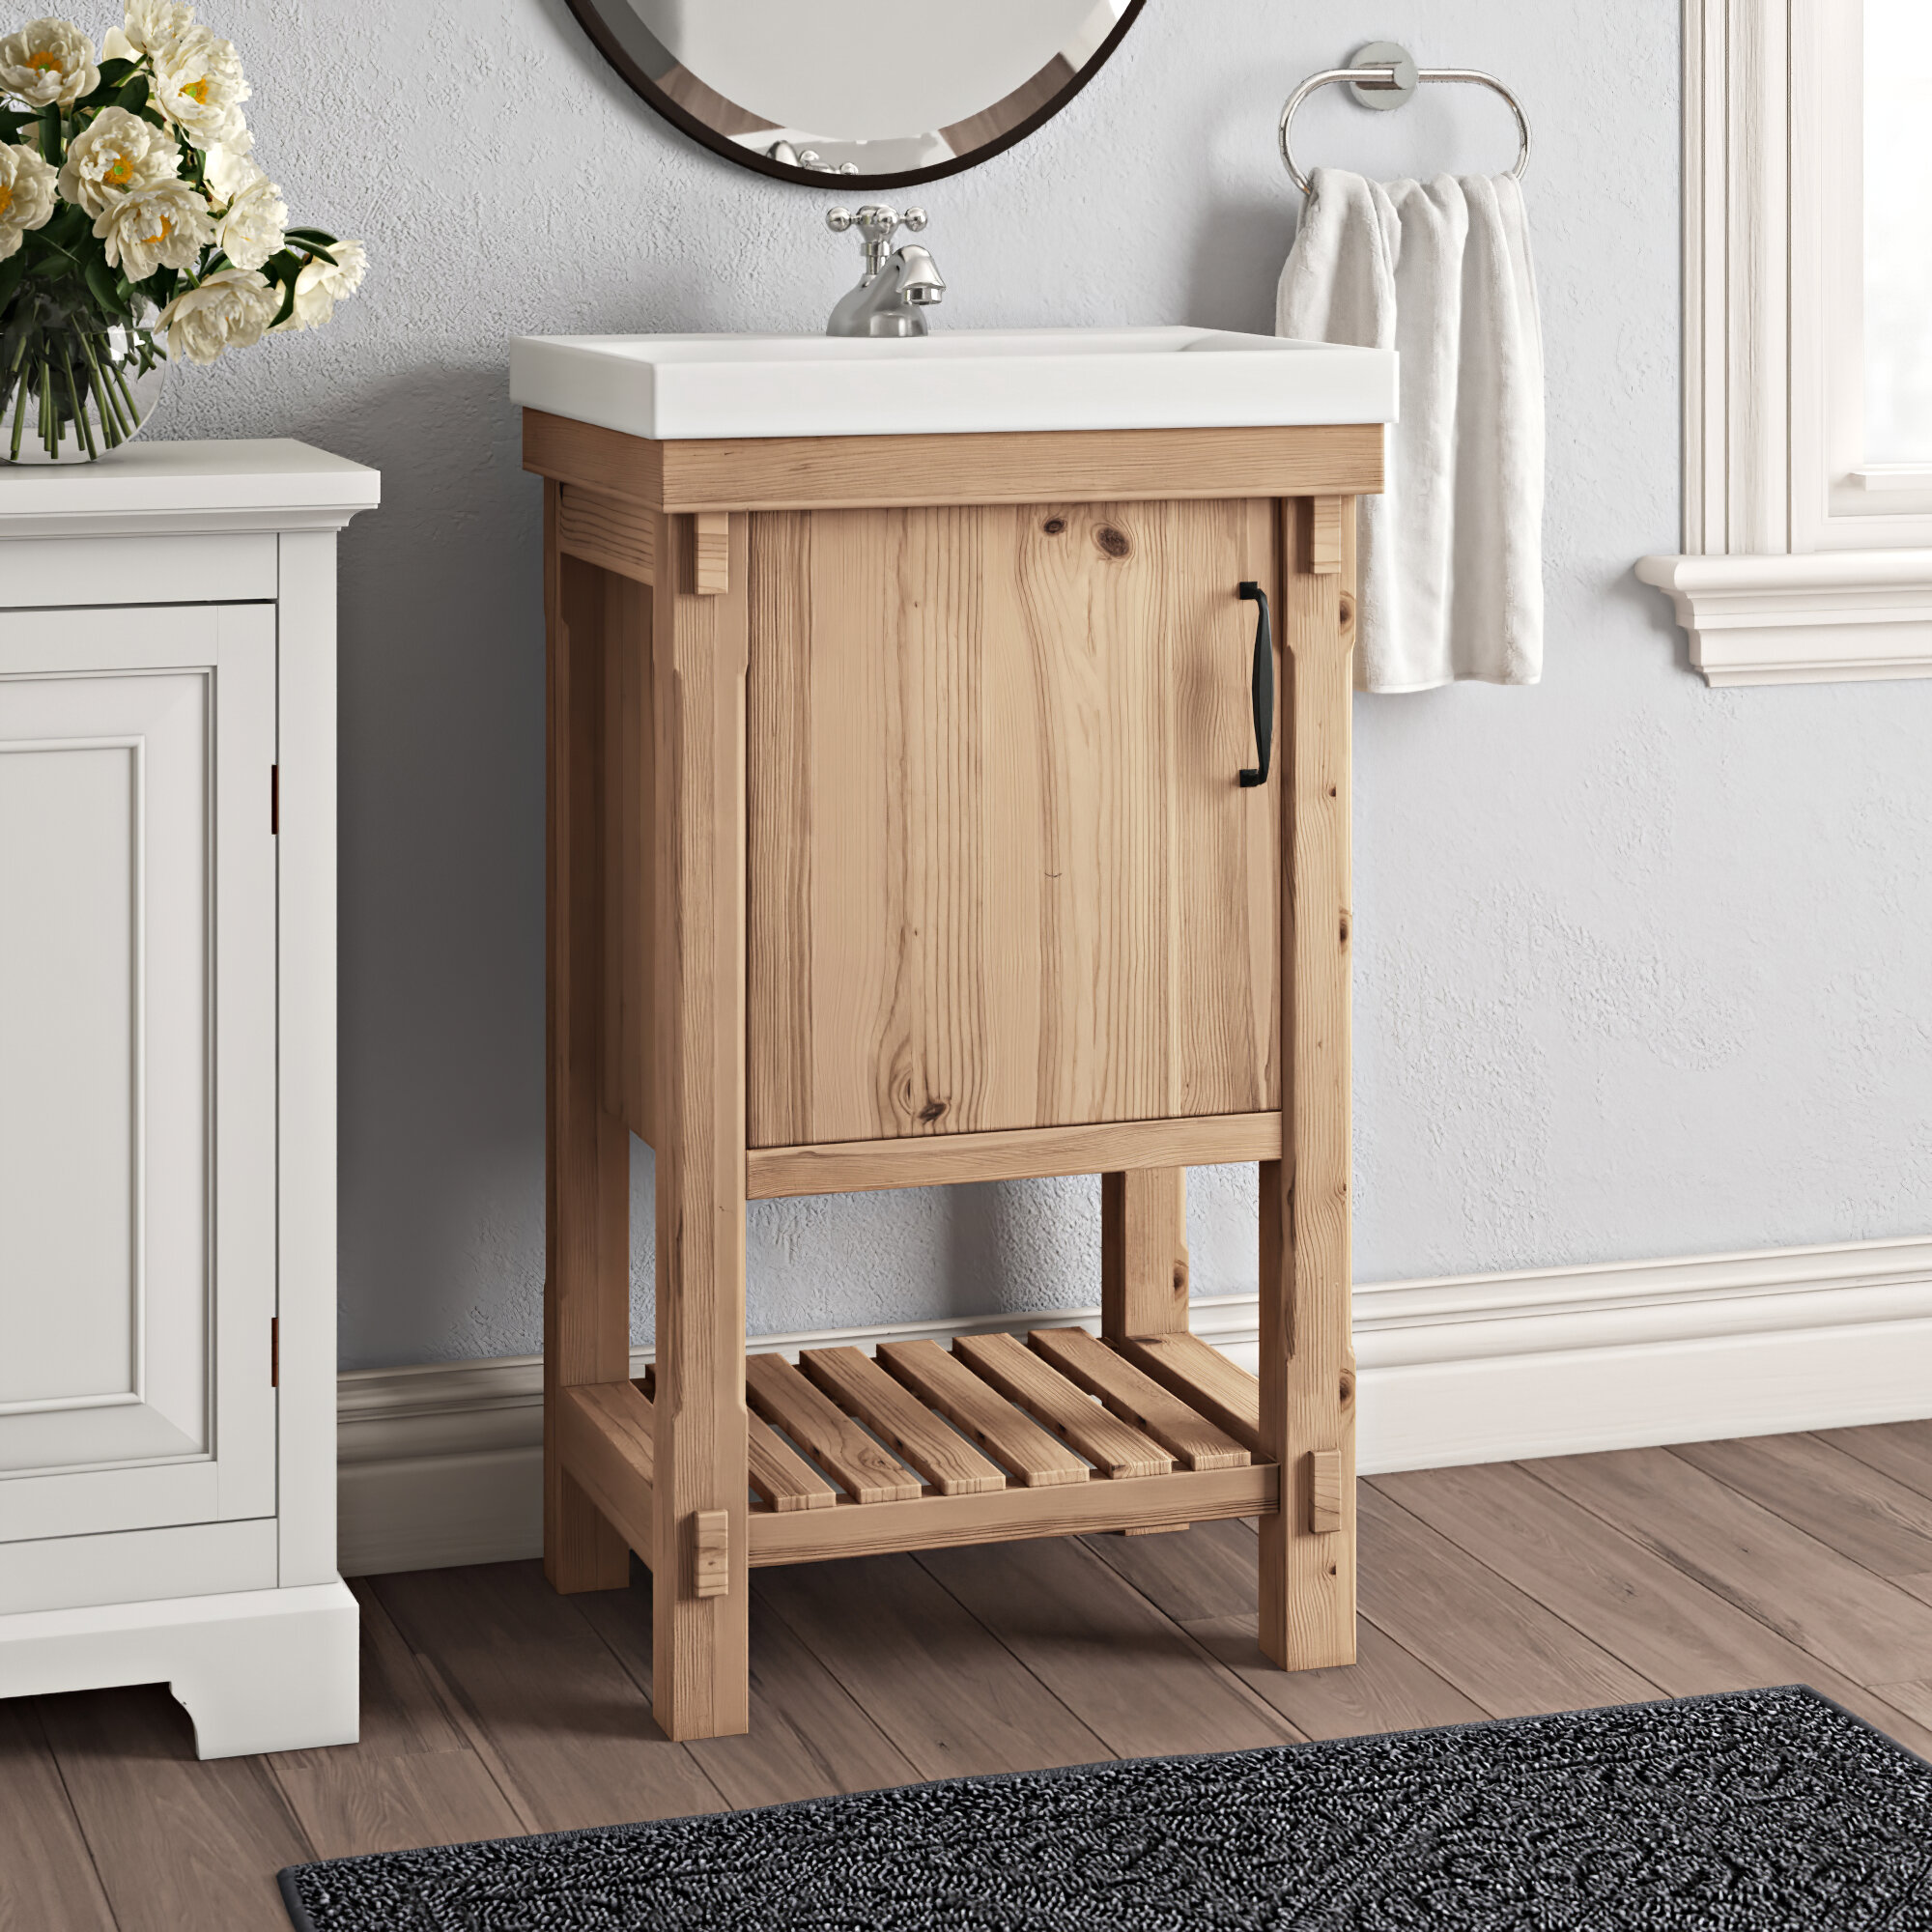 Union Rustic Whitten Rustic 20 Single Bathroom Vanity Set Reviews Wayfair